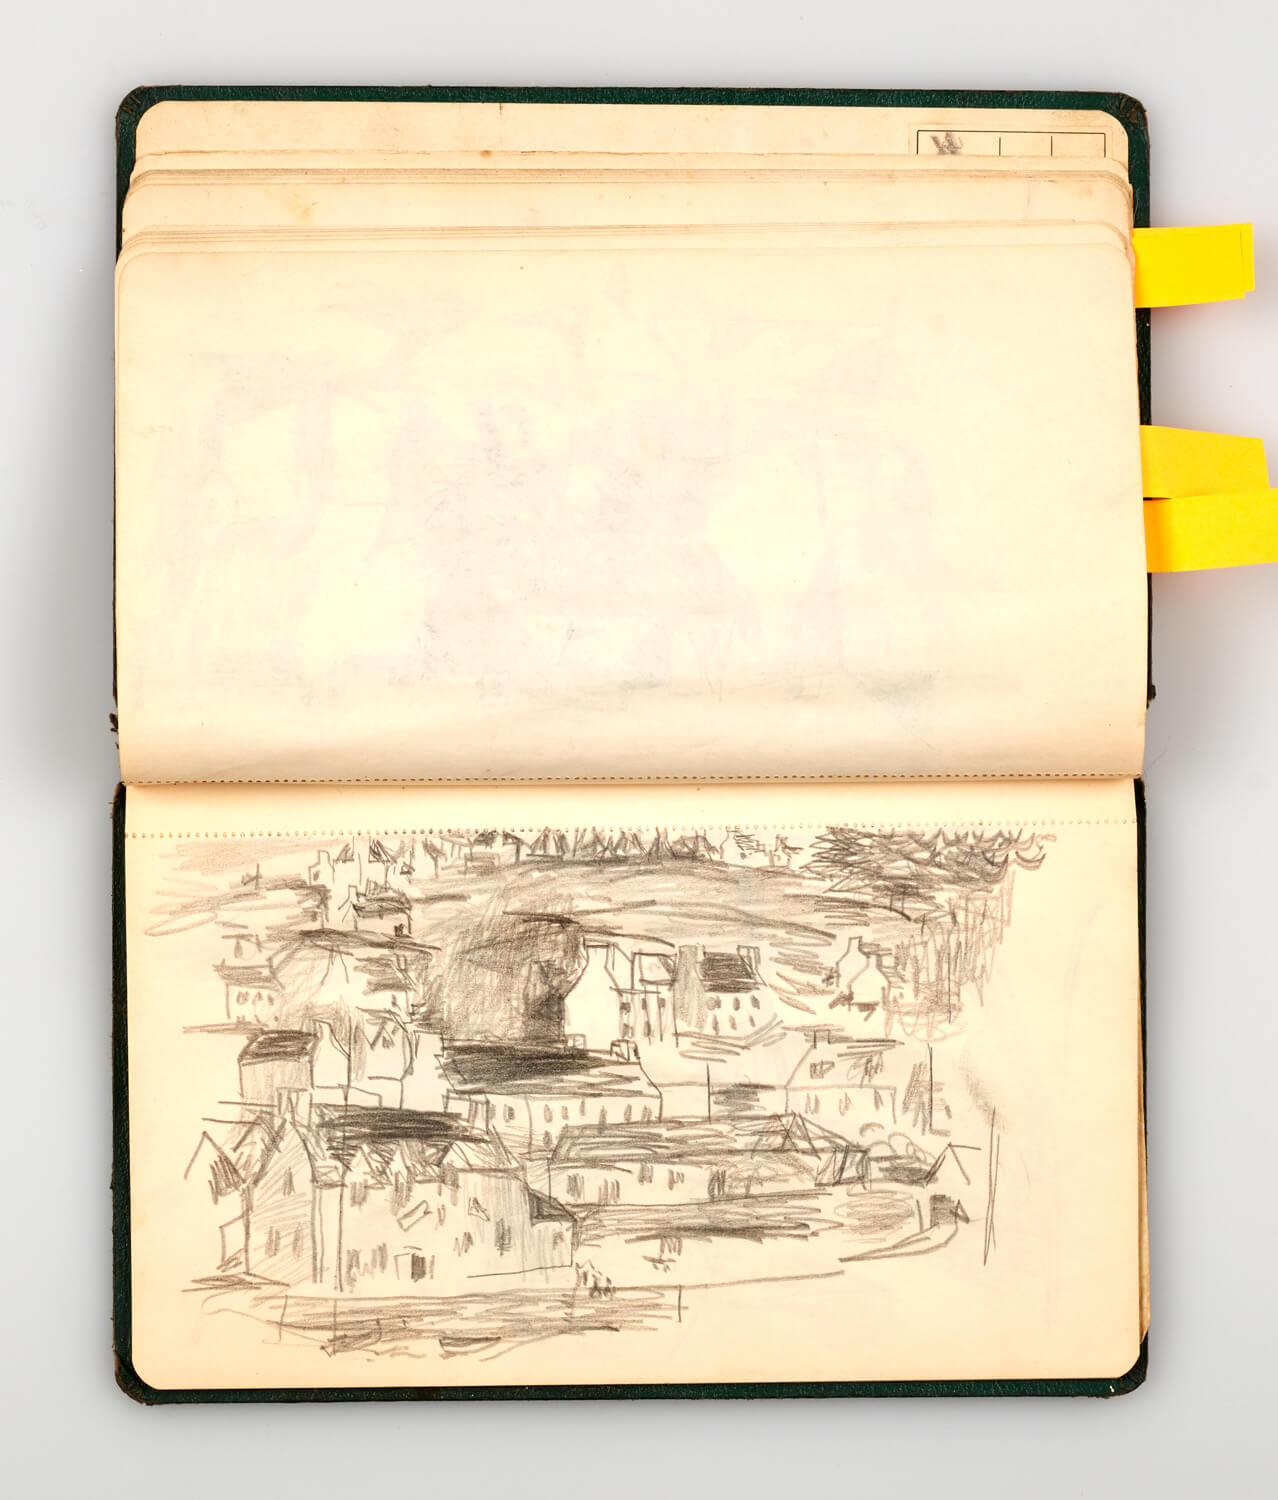 JB303 - Sketch Book 1950 - 1950 - 11 x 20.5 cm - Pencil